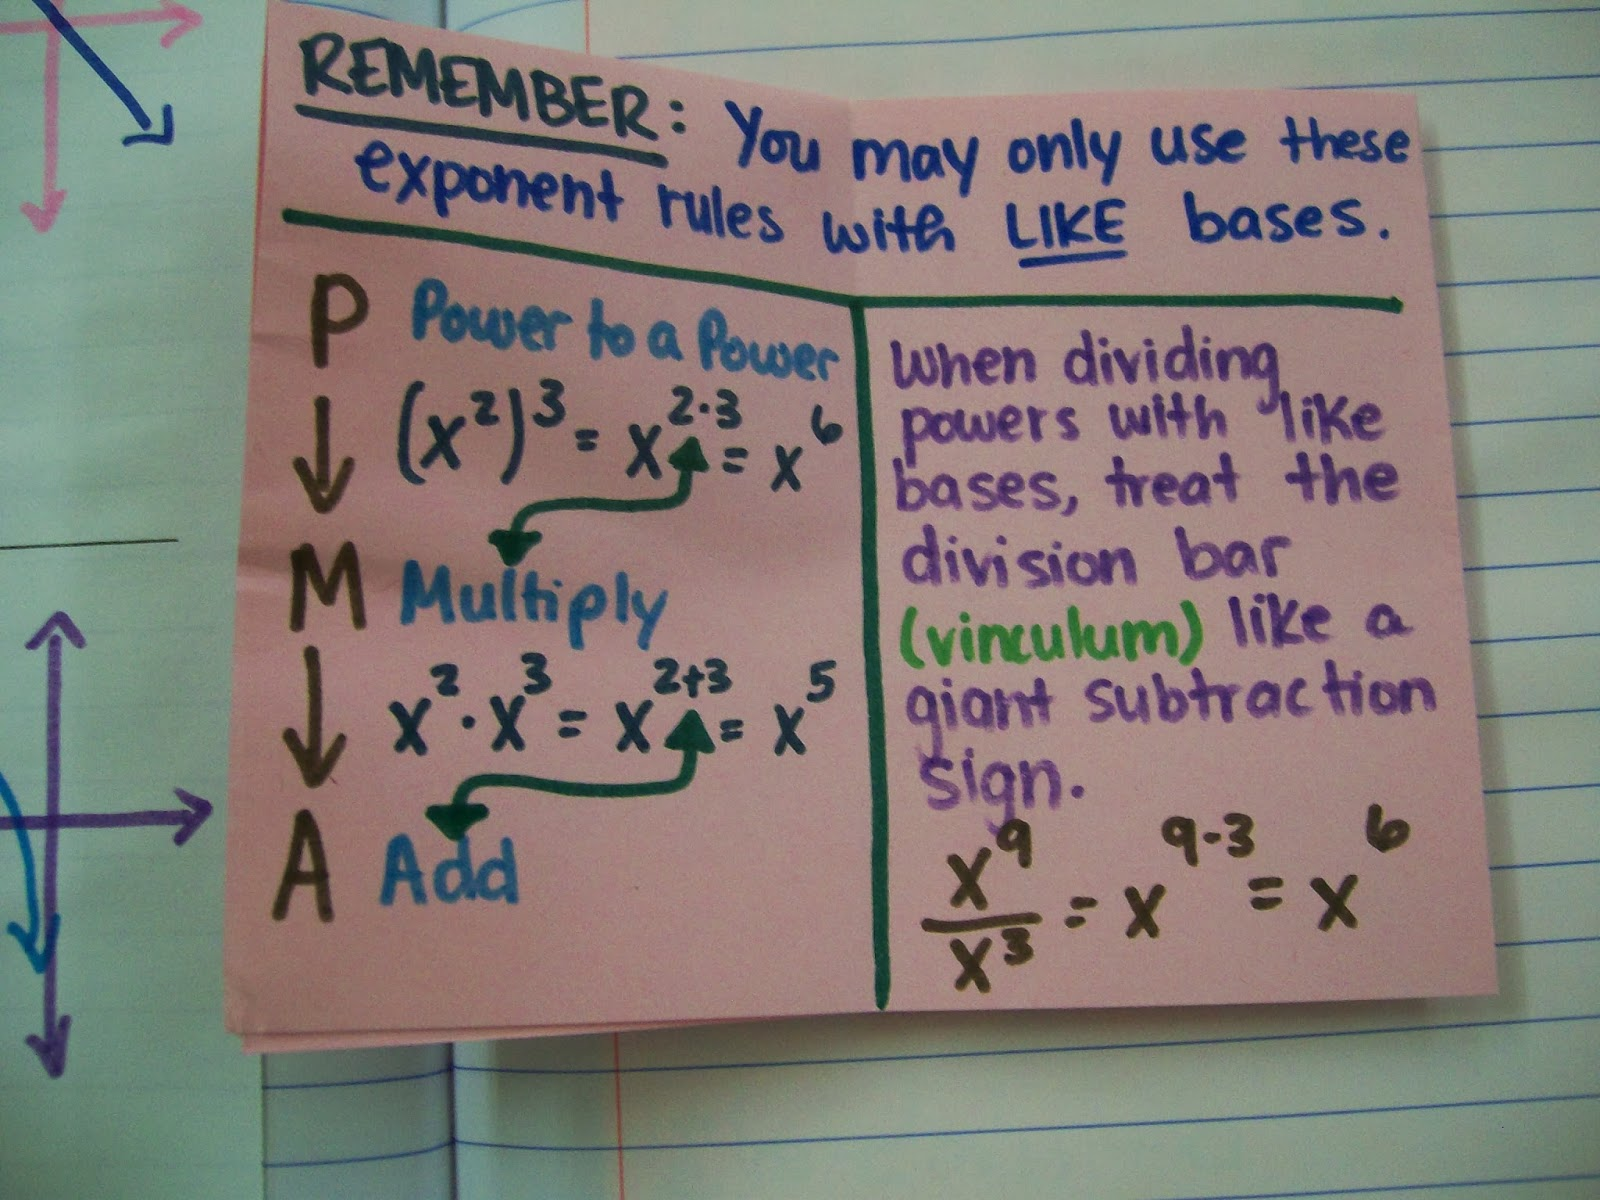 Combining Like Terms With Exponents Worksheet 009 - Combining Like Terms With Exponents Worksheet